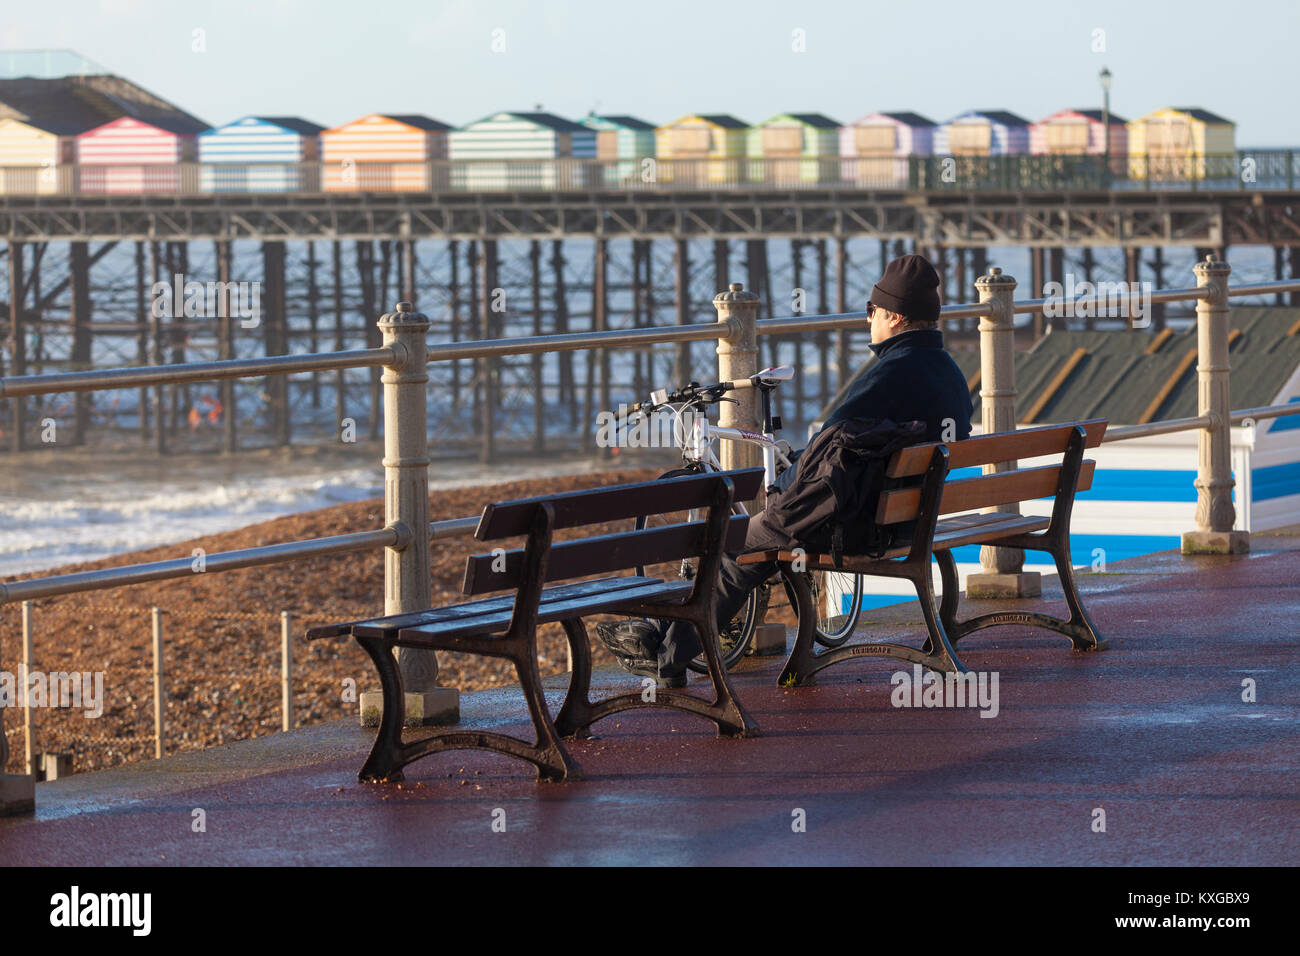 Hastings, East Sussex, UK. 10 January 2018. A bright and sunny start to the day in Hastings with lots of people - Stock Image